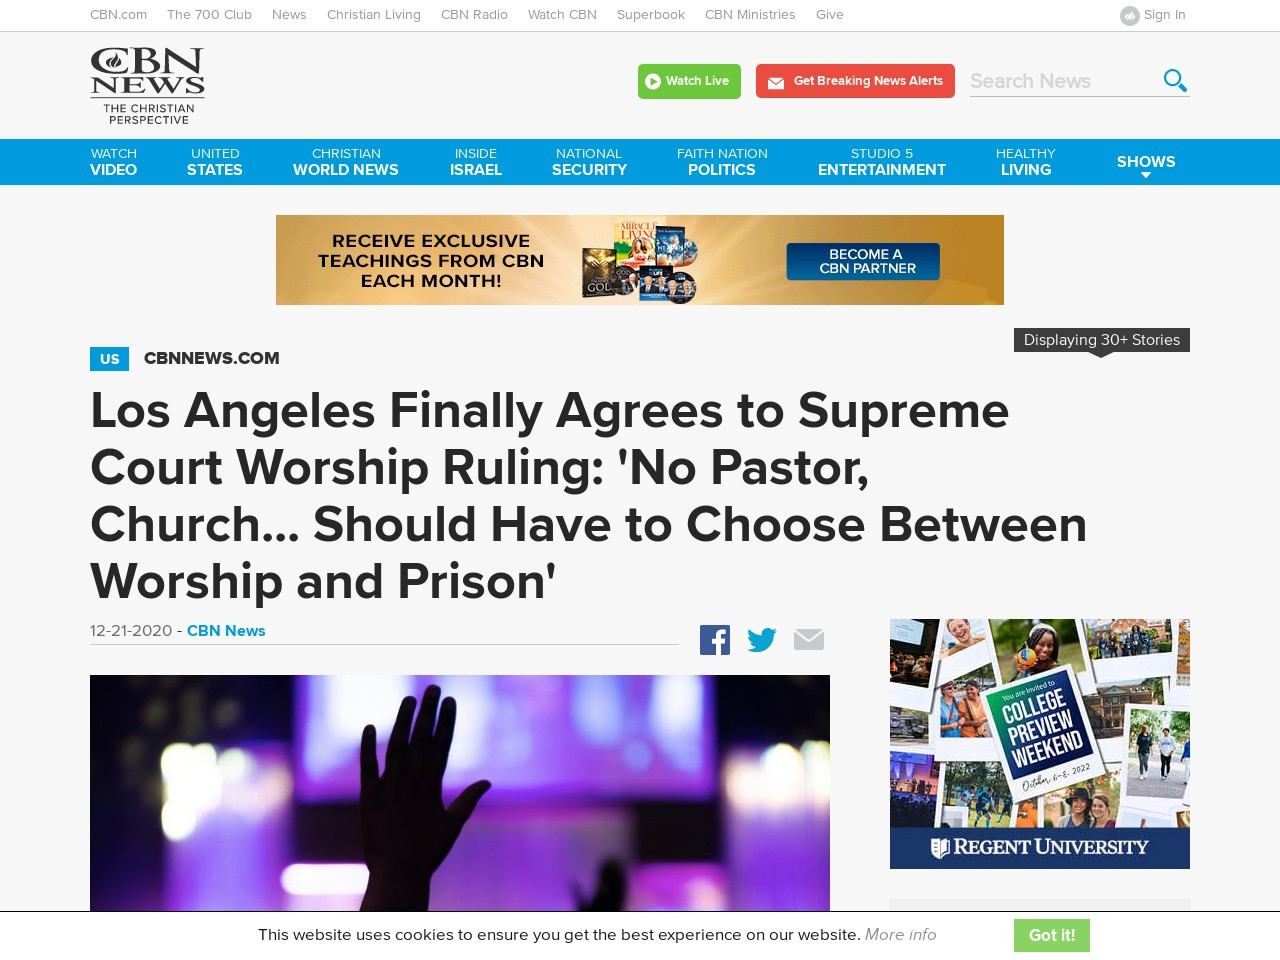 Los Angeles Finally Backs Down: 'No Pastor, Church… Should Have to Choose Between Worship and Prison'